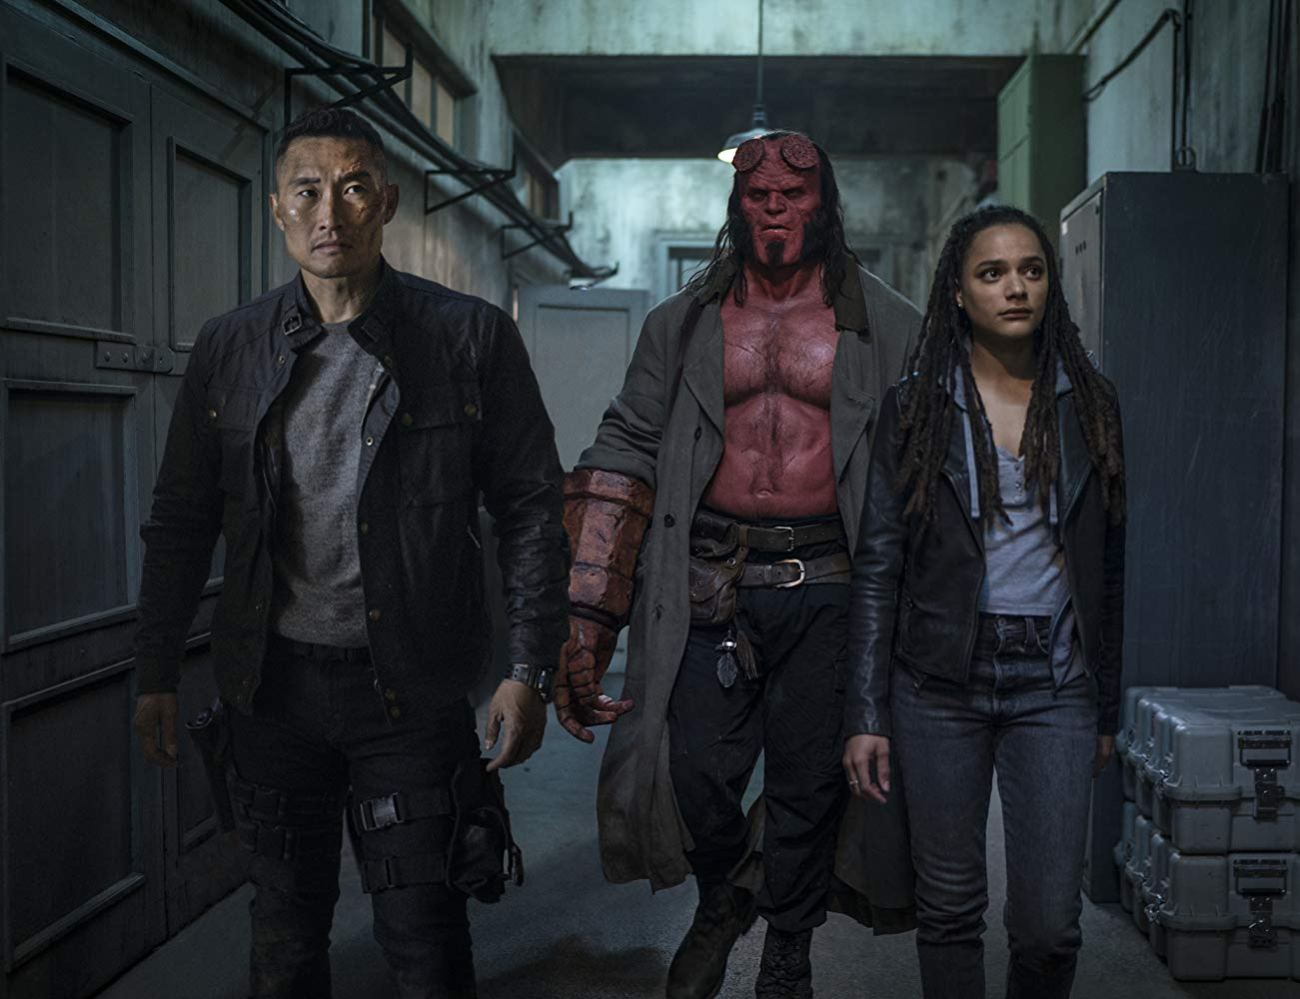 HellboyTeam